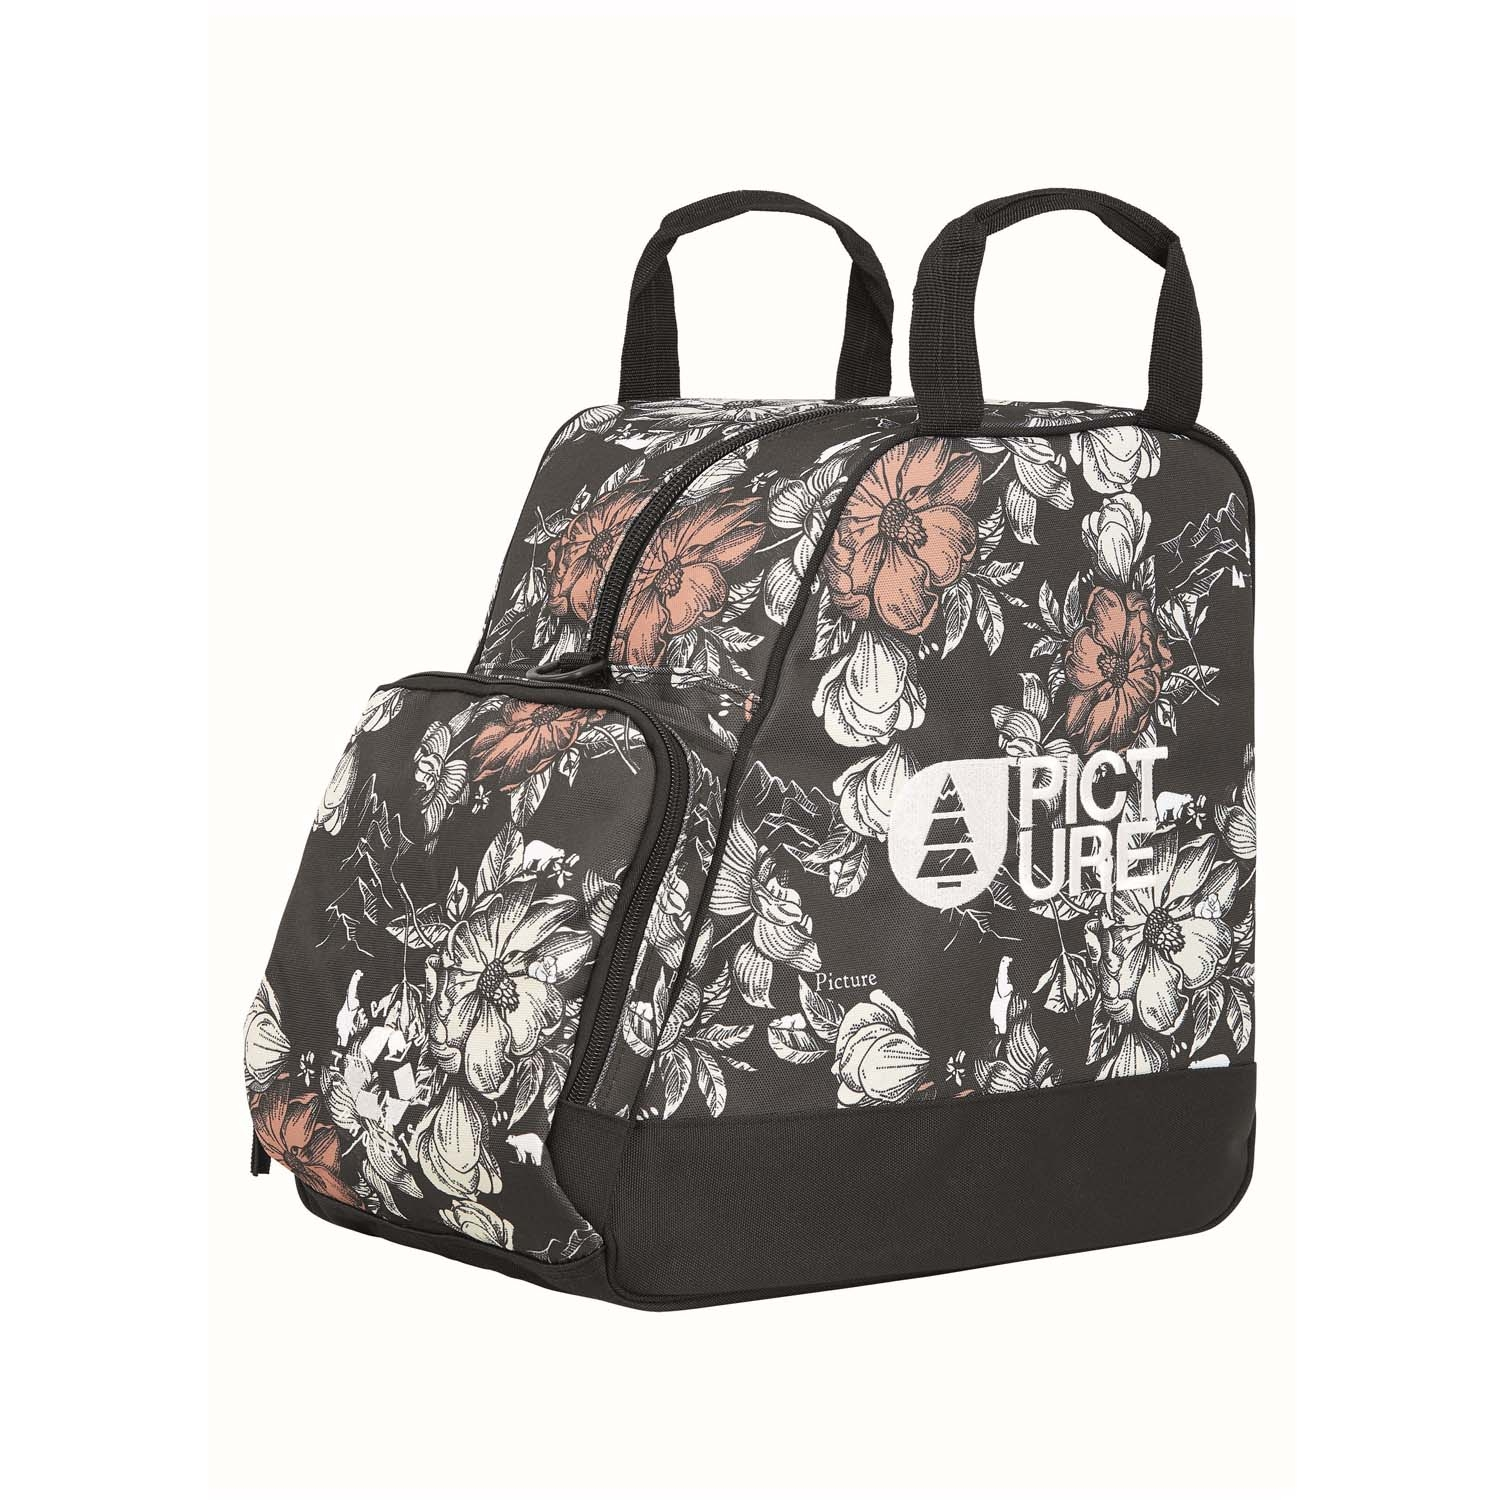 Picture Shoes Bag Peonies Black Print 2021